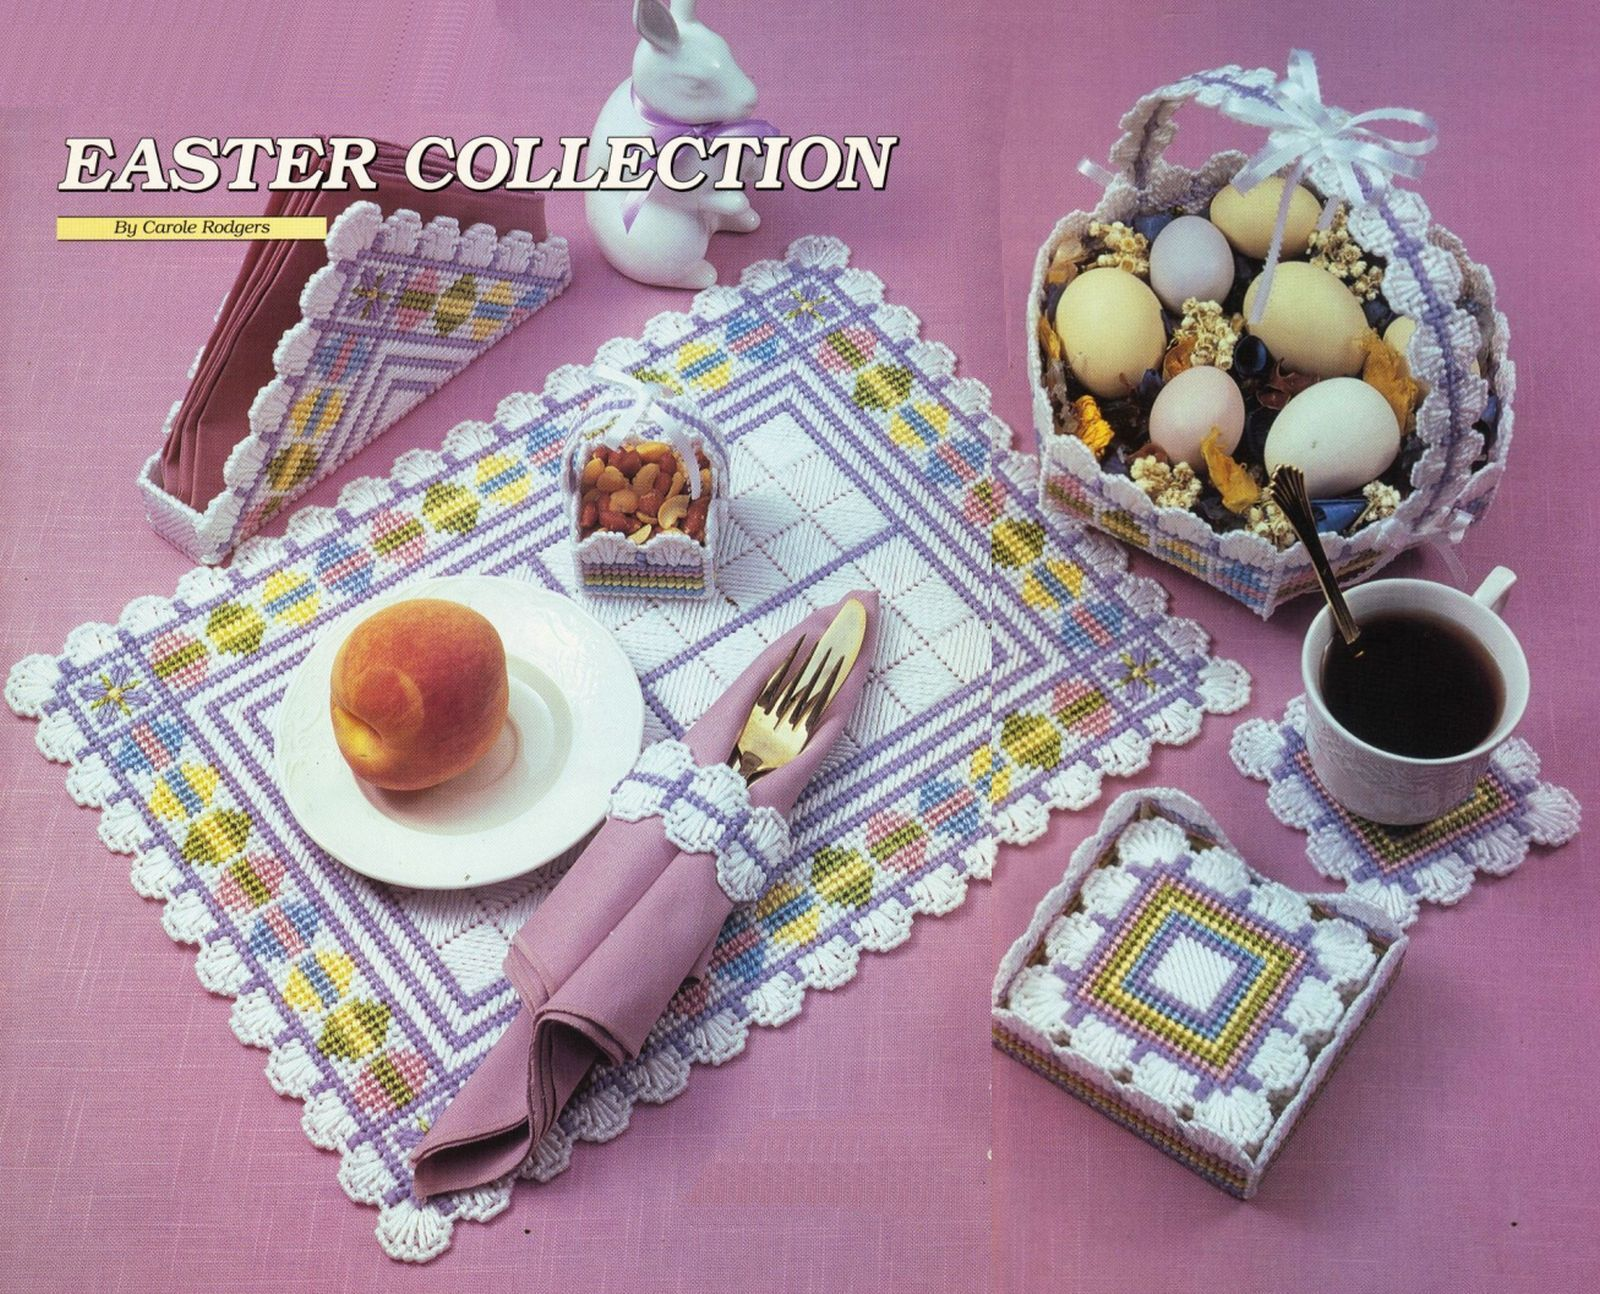 Plastic Canvas Easter Egg Placemat Doorknob And 50 Similar Items